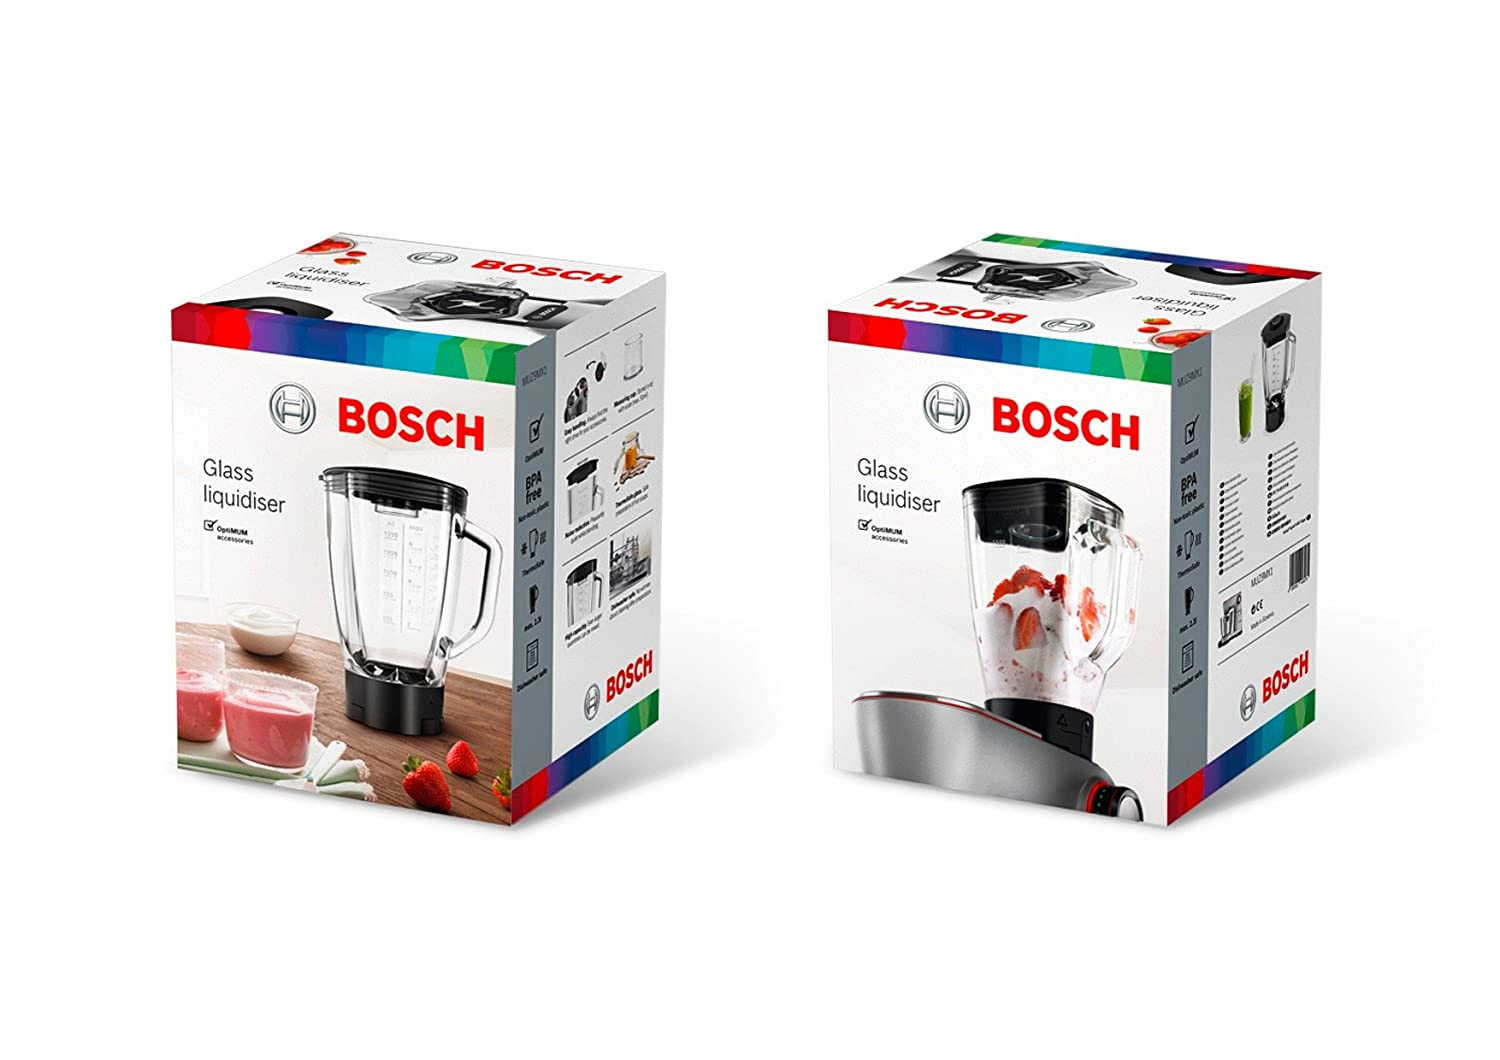 Amazon.com: Bosch MUZ9MX1 Thermosafe Glass Blender with Stainless Steel Knife For Kitchen Optimum: Kitchen & Dining